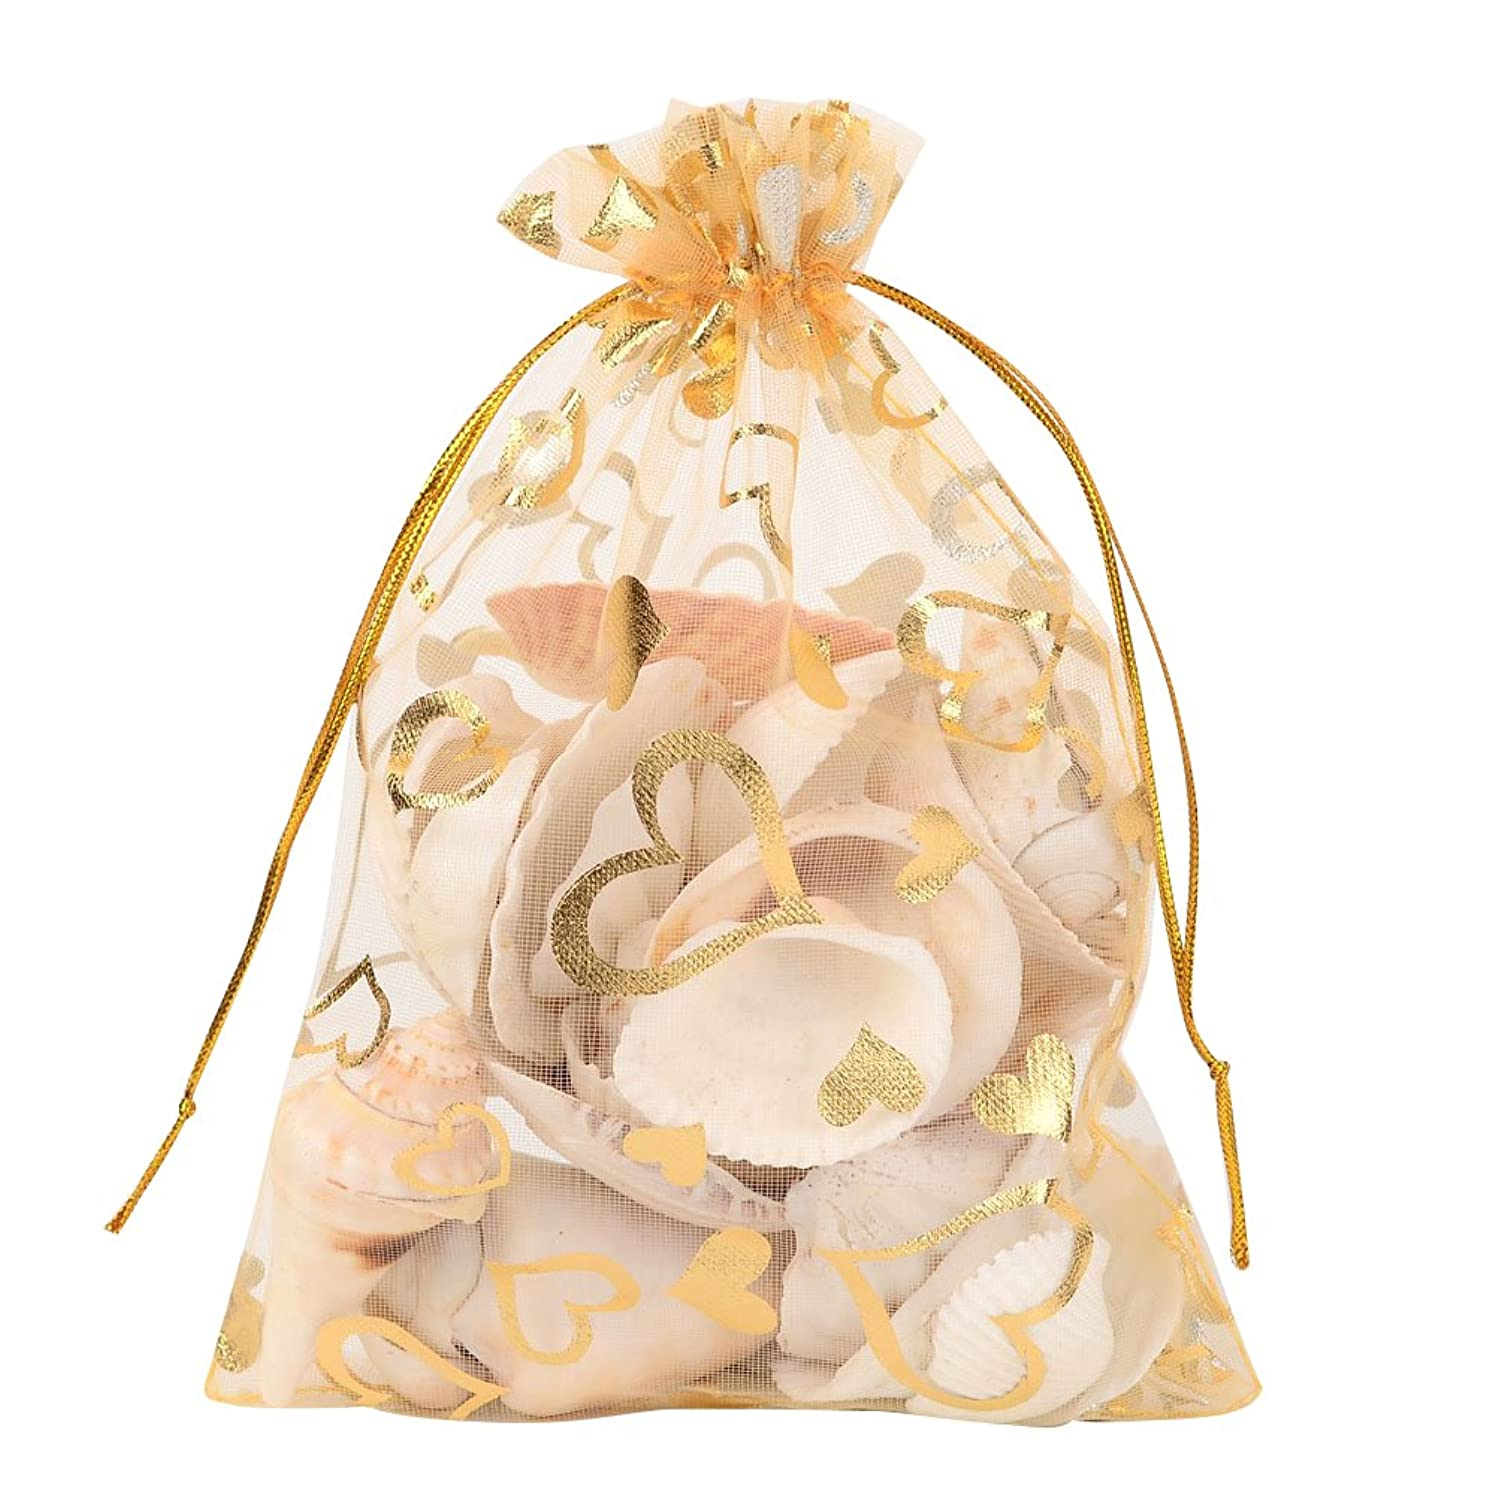 Pandahall 100 PCS 5x7 Inches Heart Printed Goldenrod Organza Bags Jewelry Pouch Bags Organza Velvet Drawstring Pouches Wedding Favors Candy Gift Bags